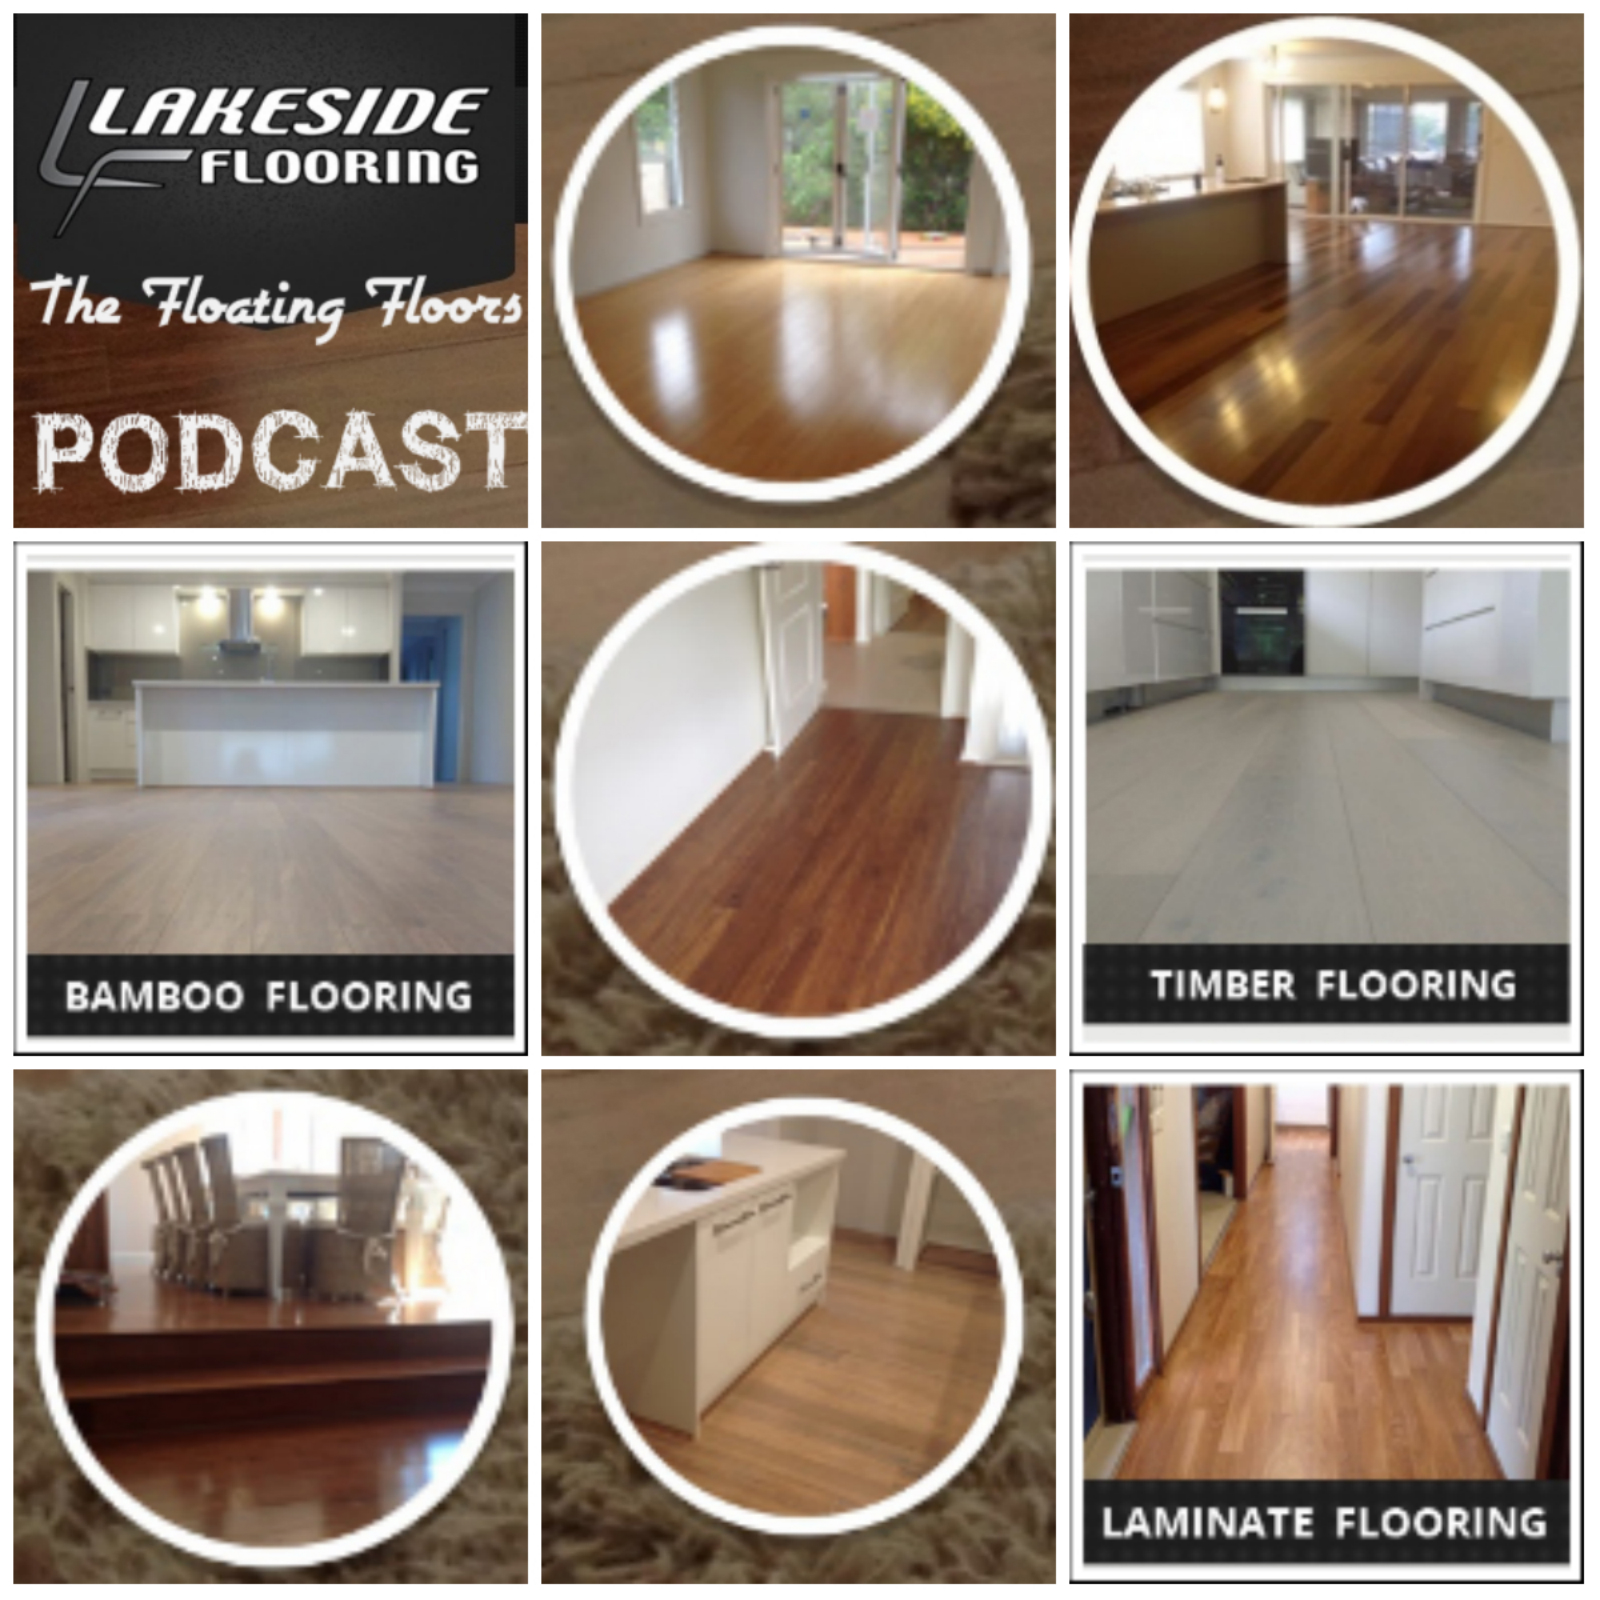 The Bamboo, Timber and Laminate Flooring Podcast